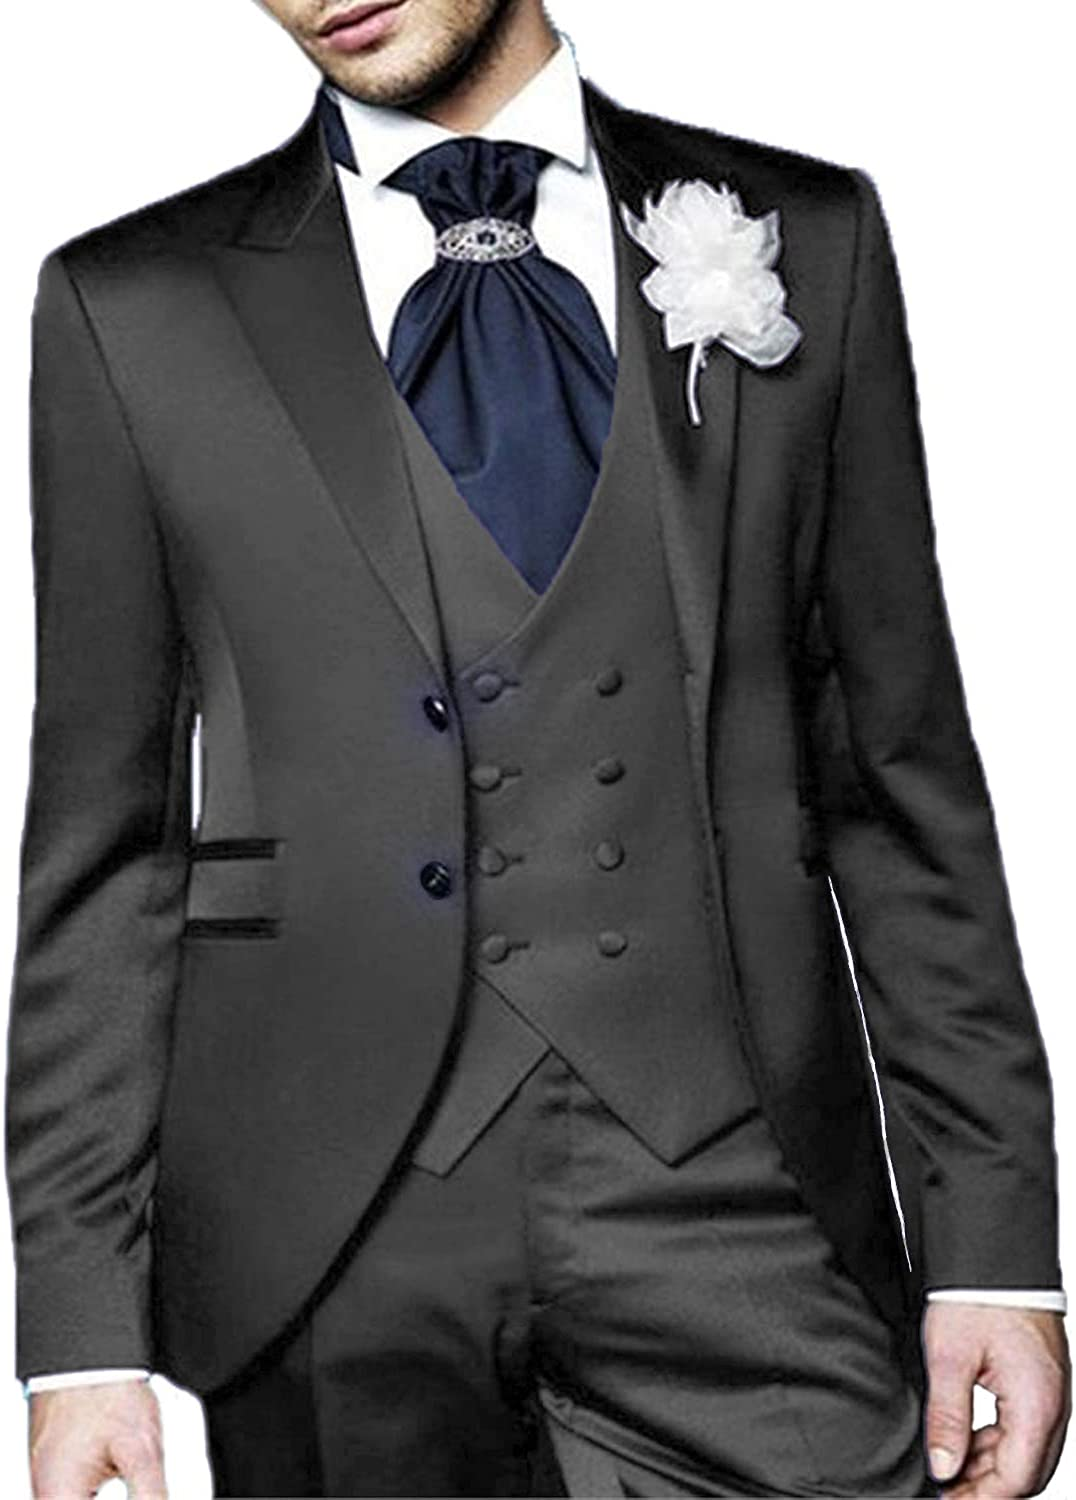 Everbeauty Mens 3 Piece Wedding SuitsSlim Fit Tuxedo Stylish Formal Prom Suit Party Jacket Blazer EXZ022